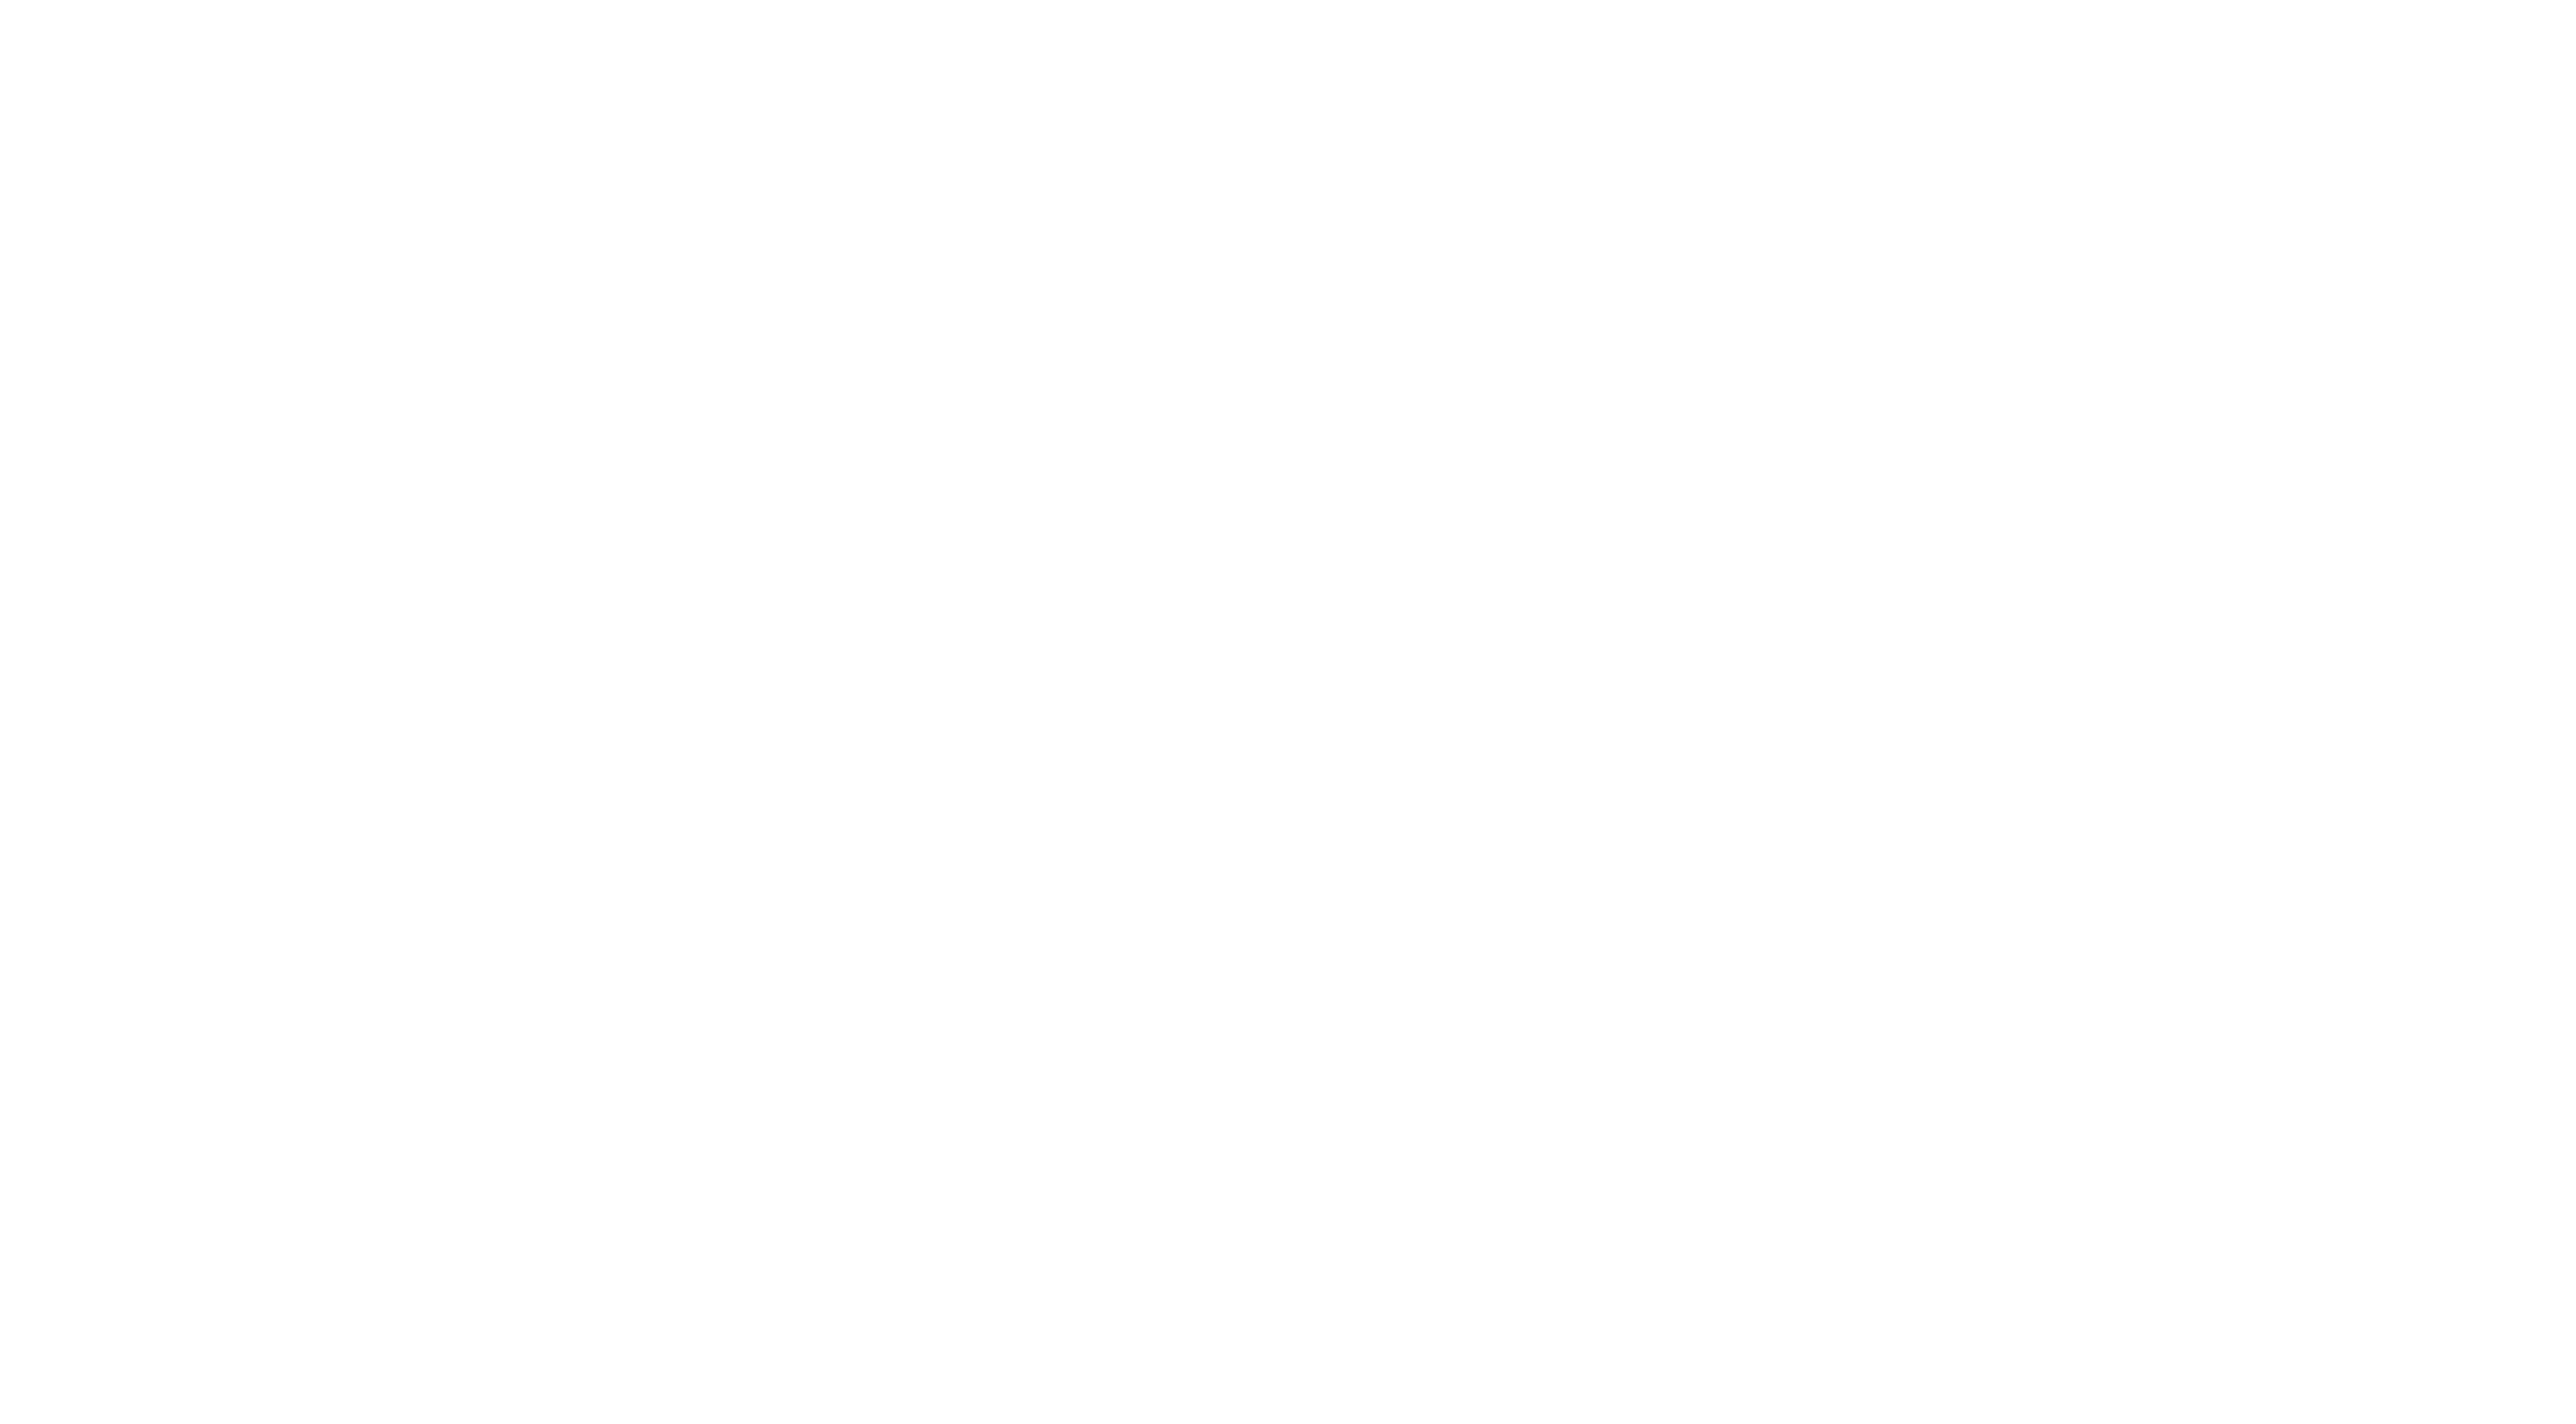 Freigeist Tattoo & Piercing